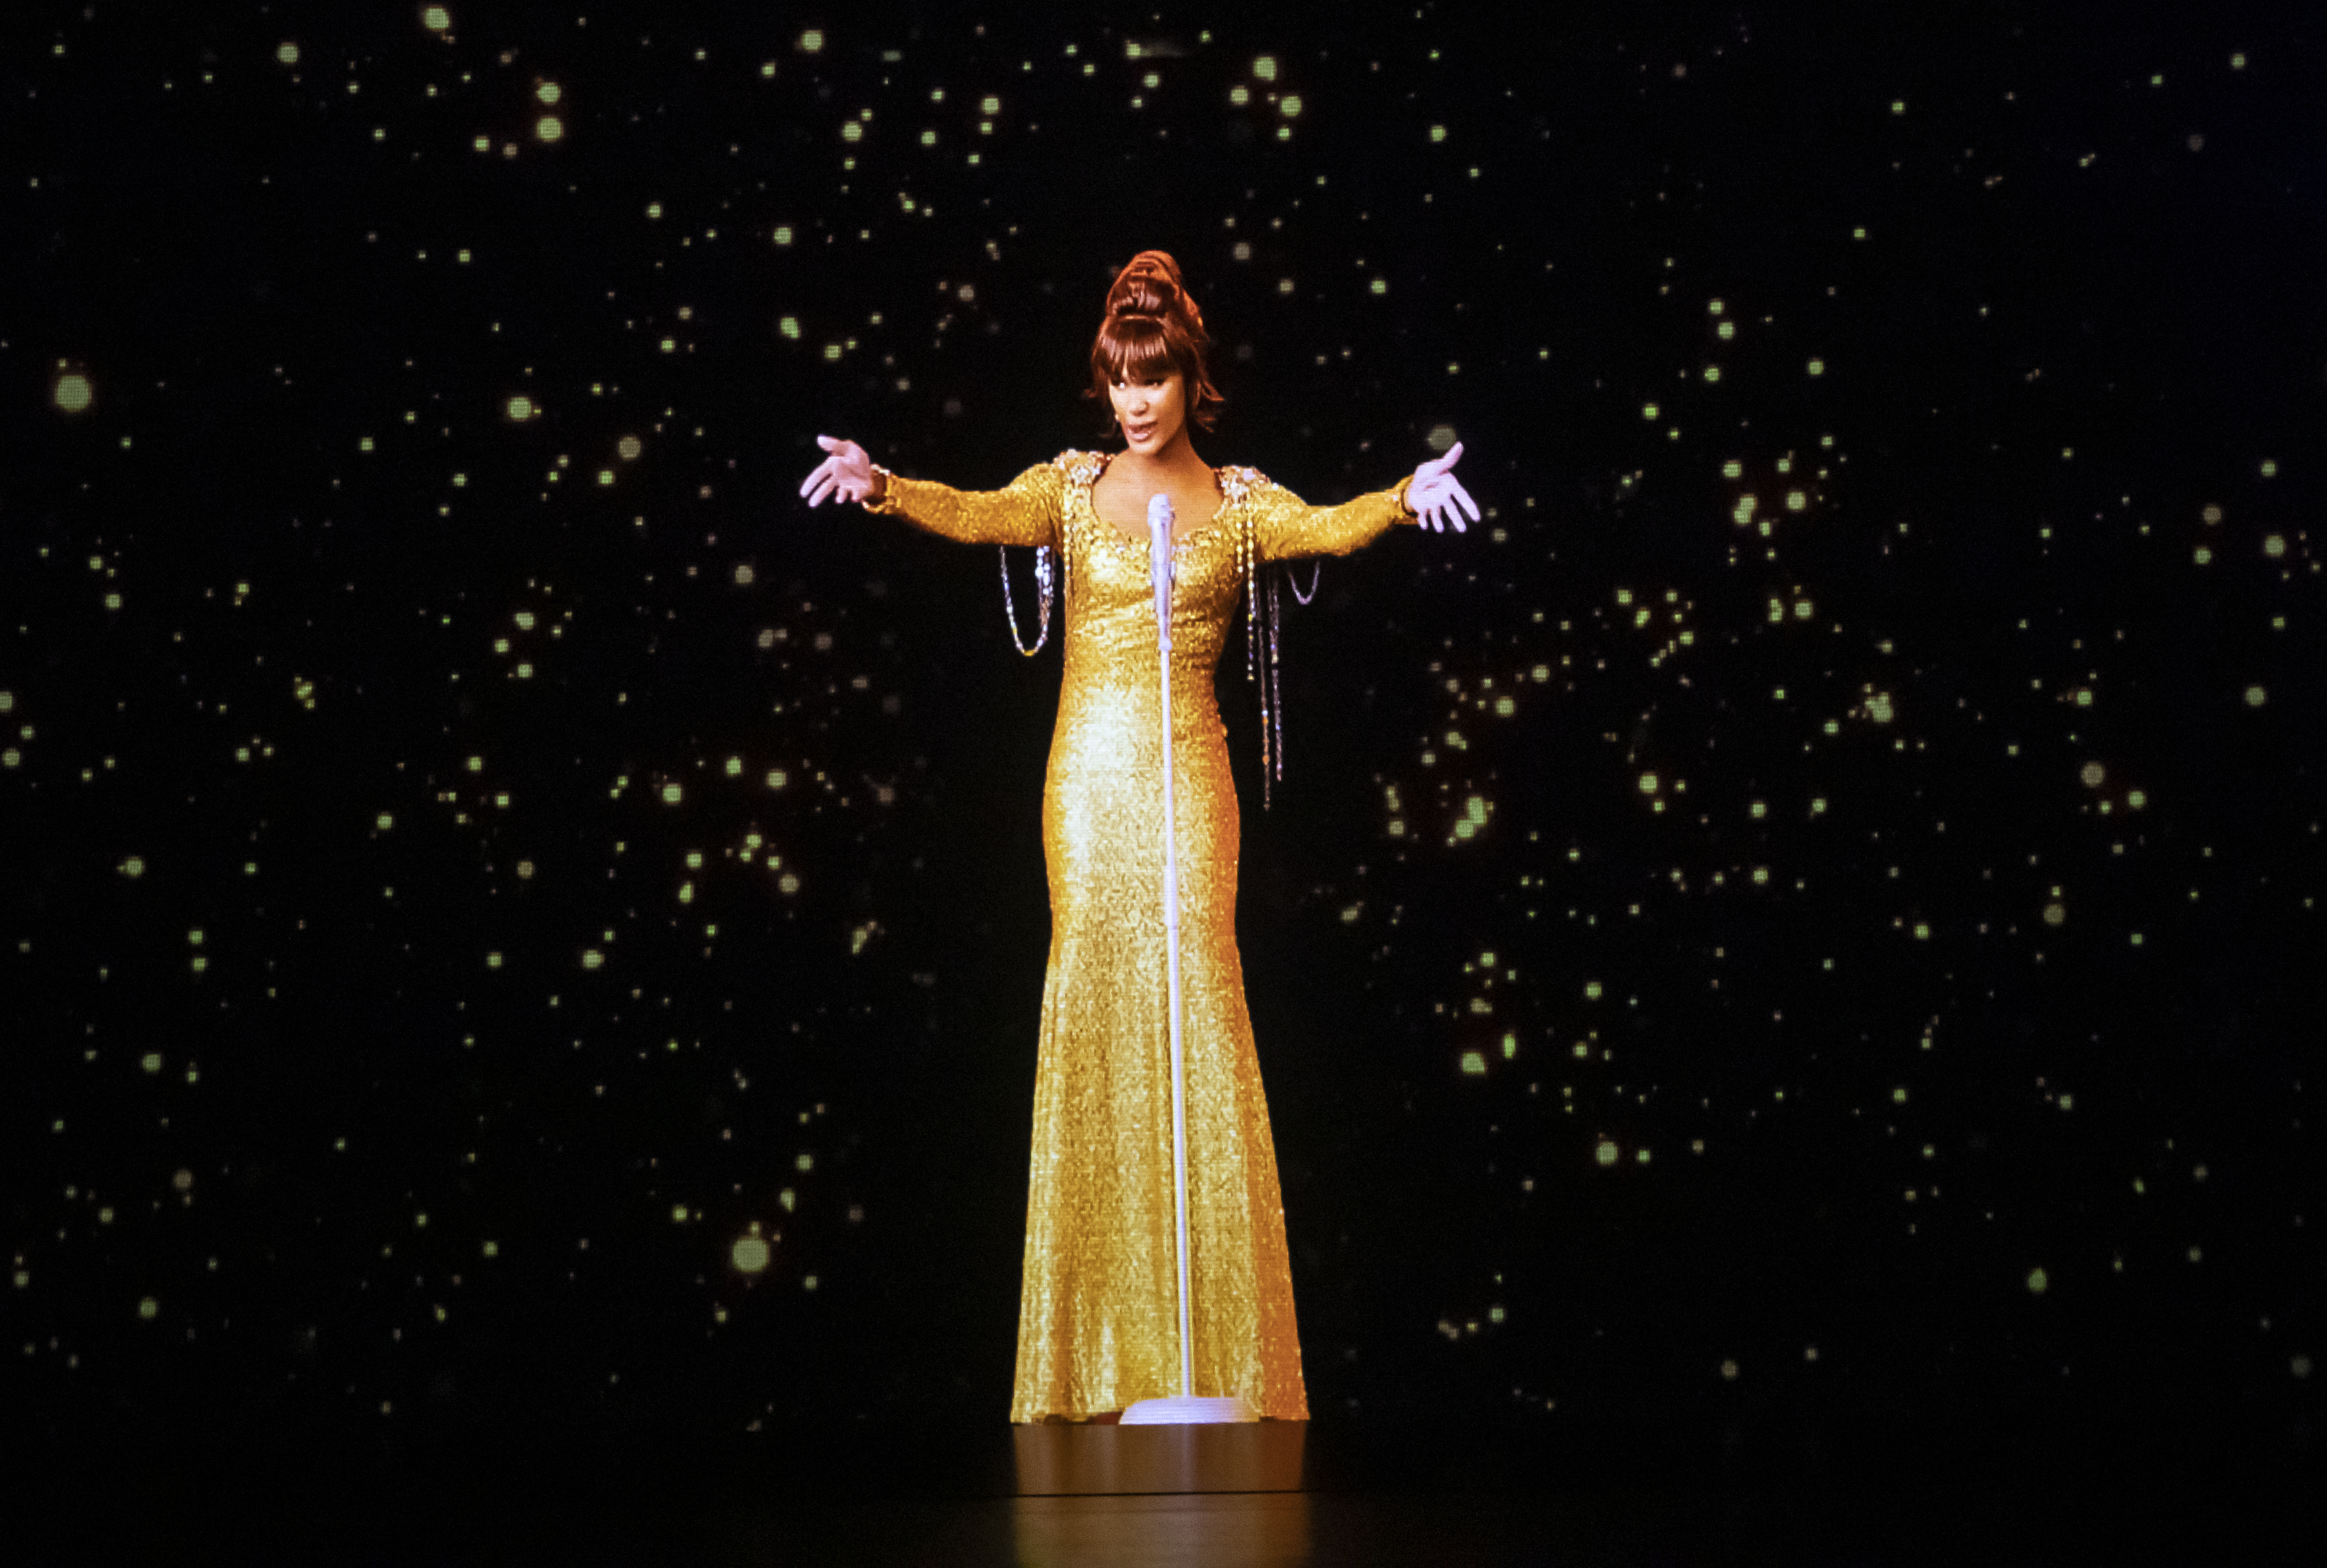 A dress rehearsal for the Whitney Houston hologram tour, which opens tonight at City Hall in Sheffield, before embarking on a international tour.